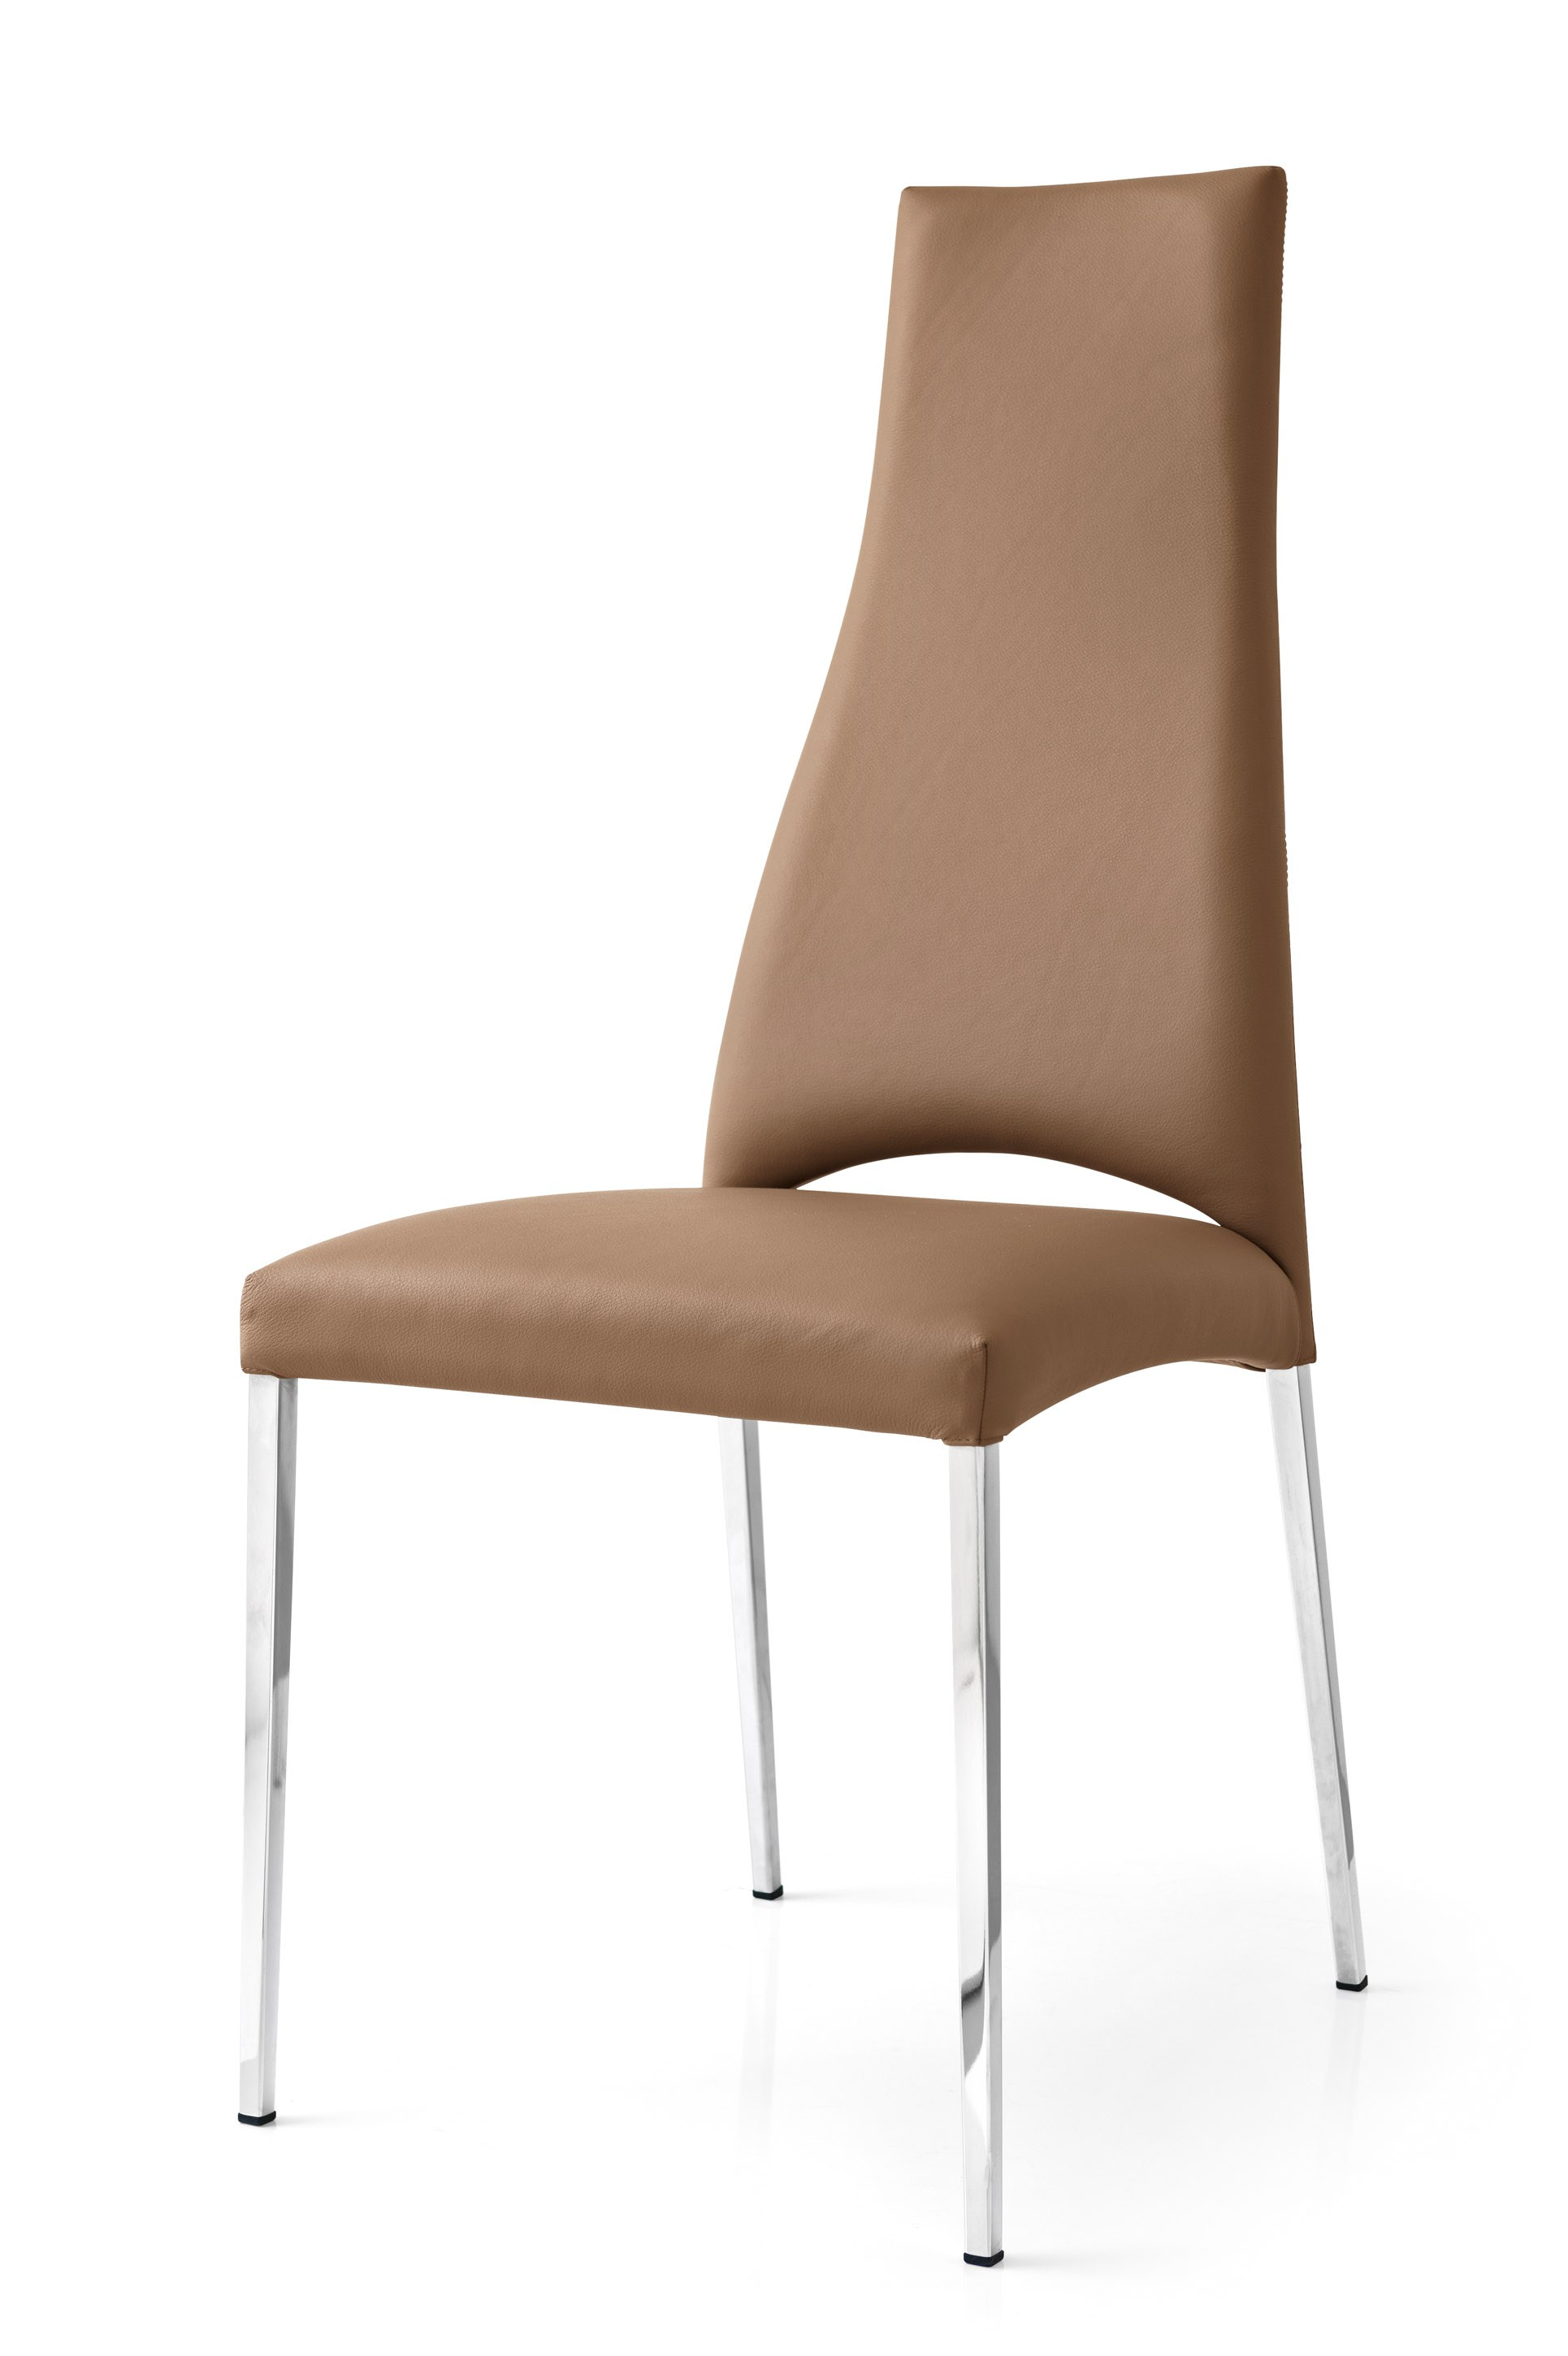 Juliet sedia by calligaris design studio 28 - Sedia juliet calligaris prezzo ...